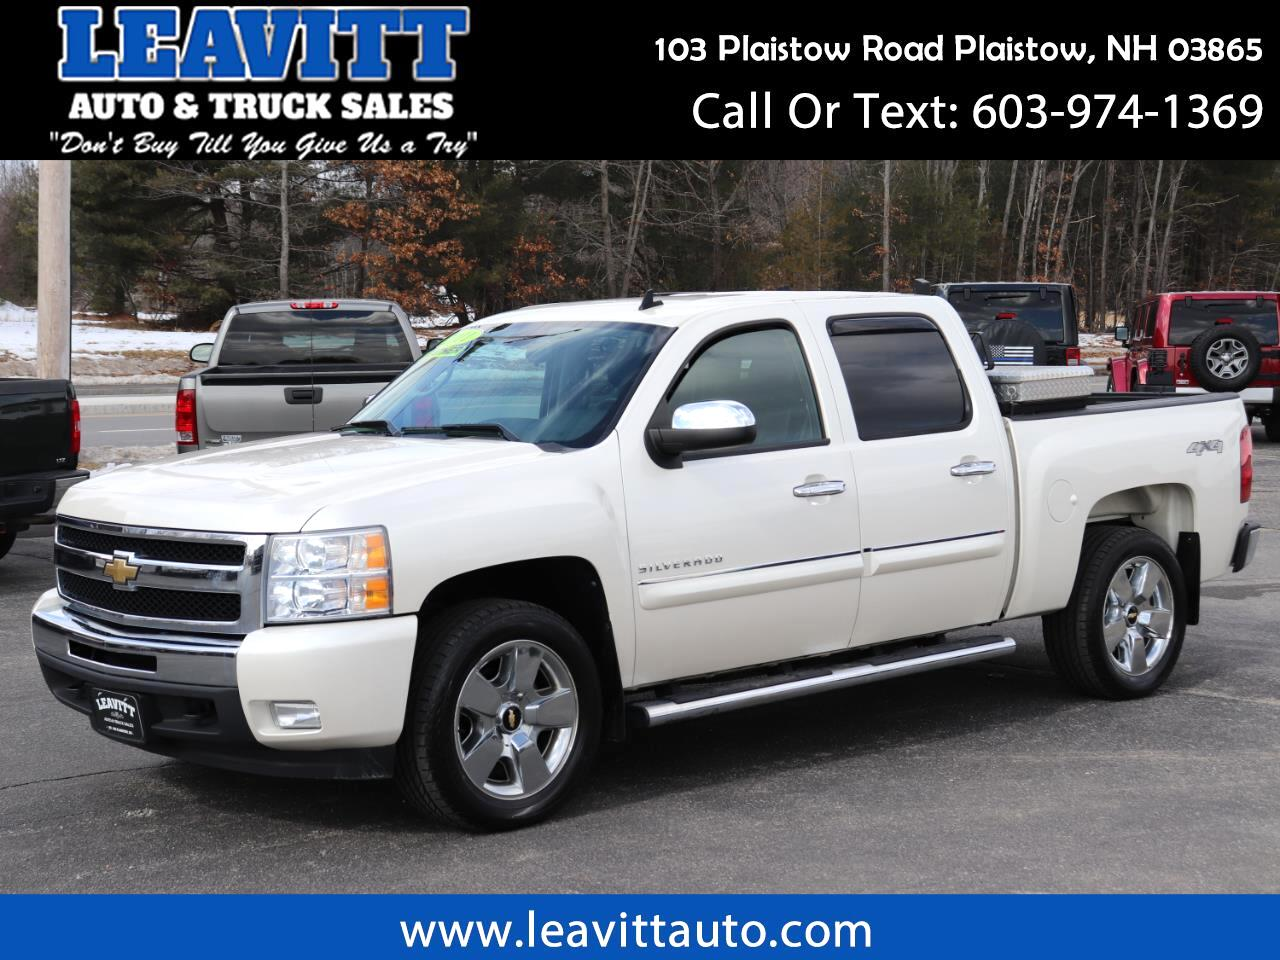 2011 Chevrolet Silverado 1500 LT CREW CAB 4X4 LEATHER